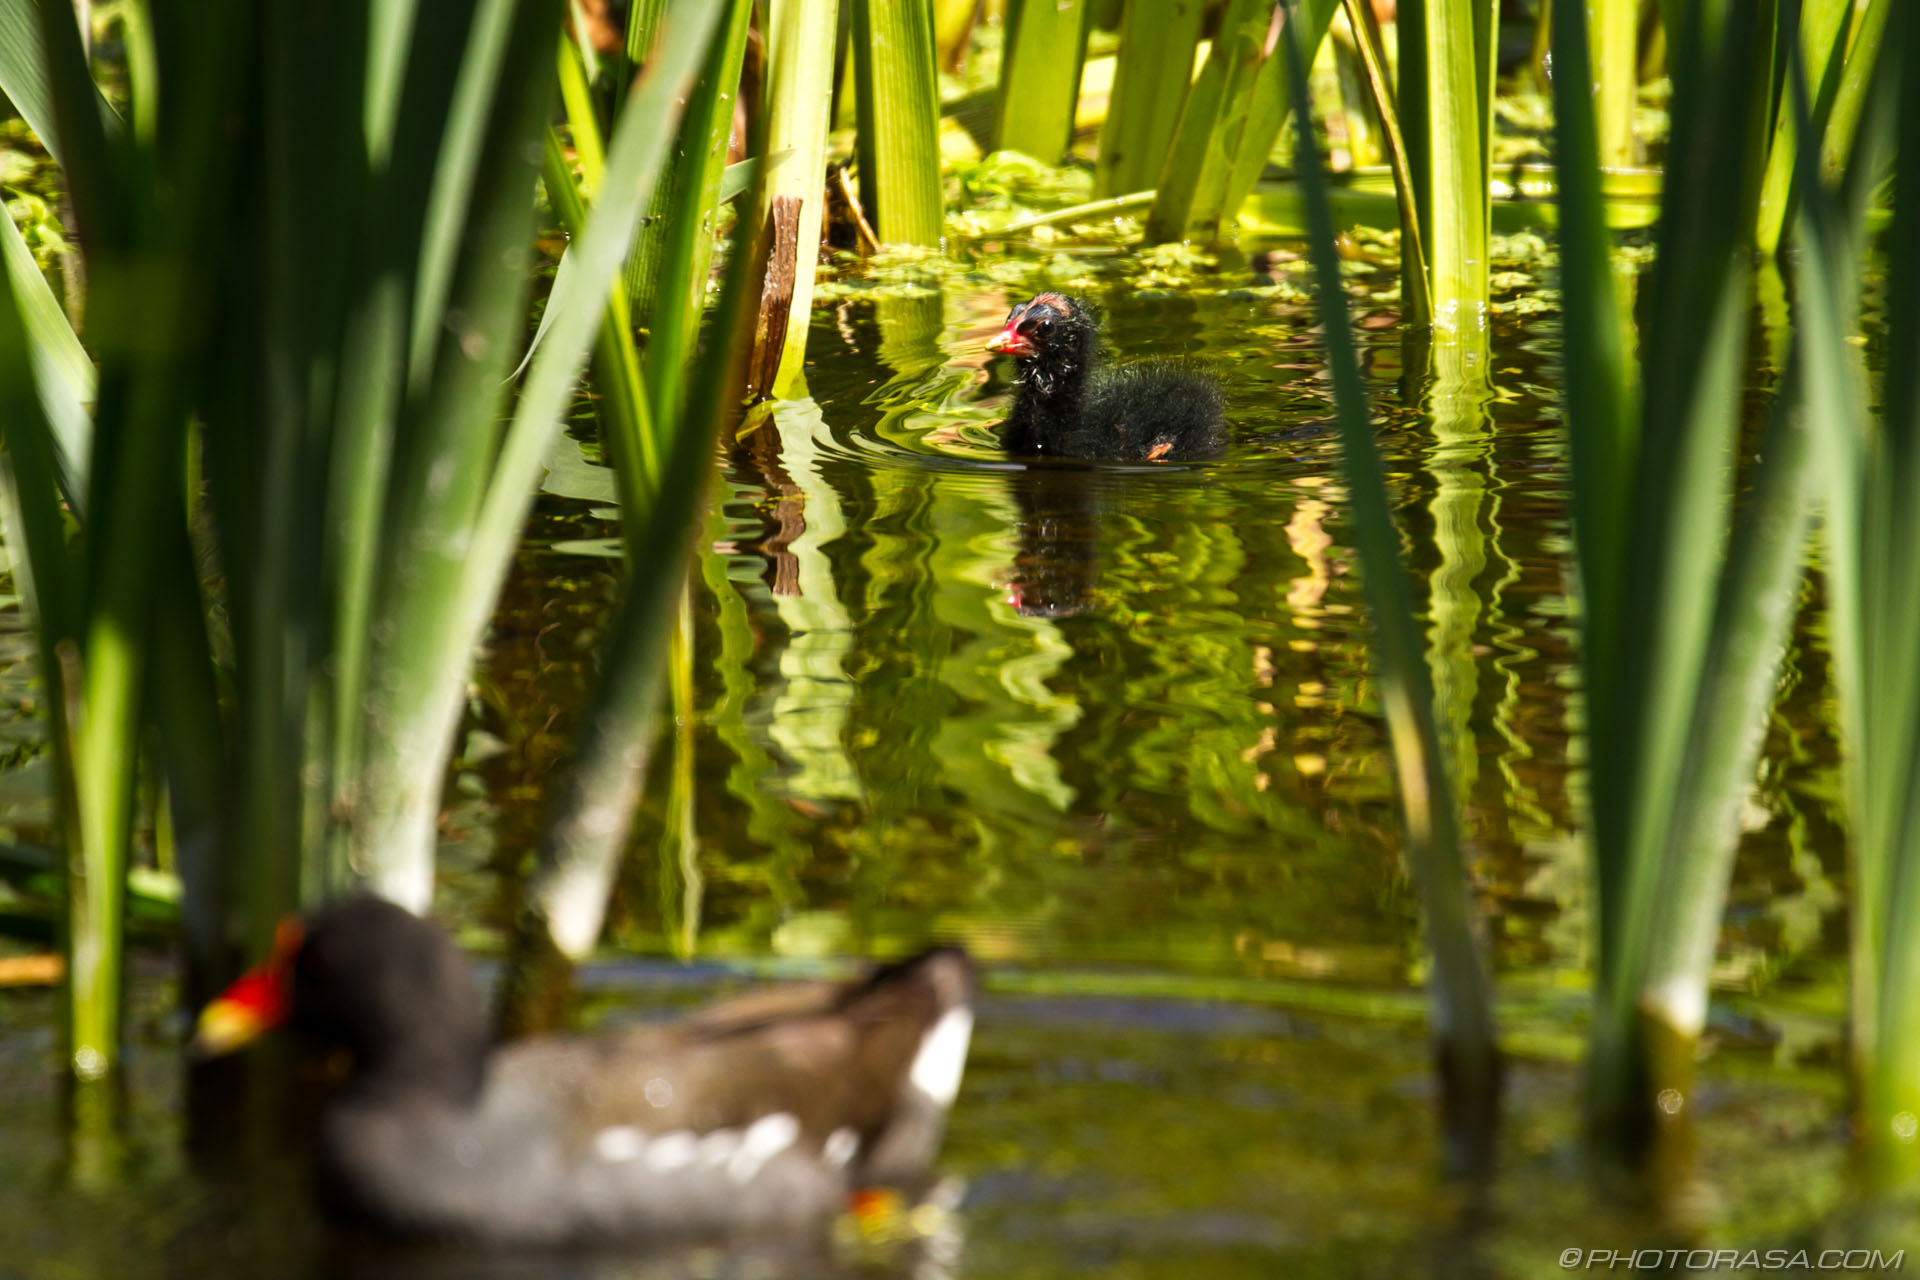 https://photorasa.com/baby-moorhen-and-mother/baby-left-by-his-mother/